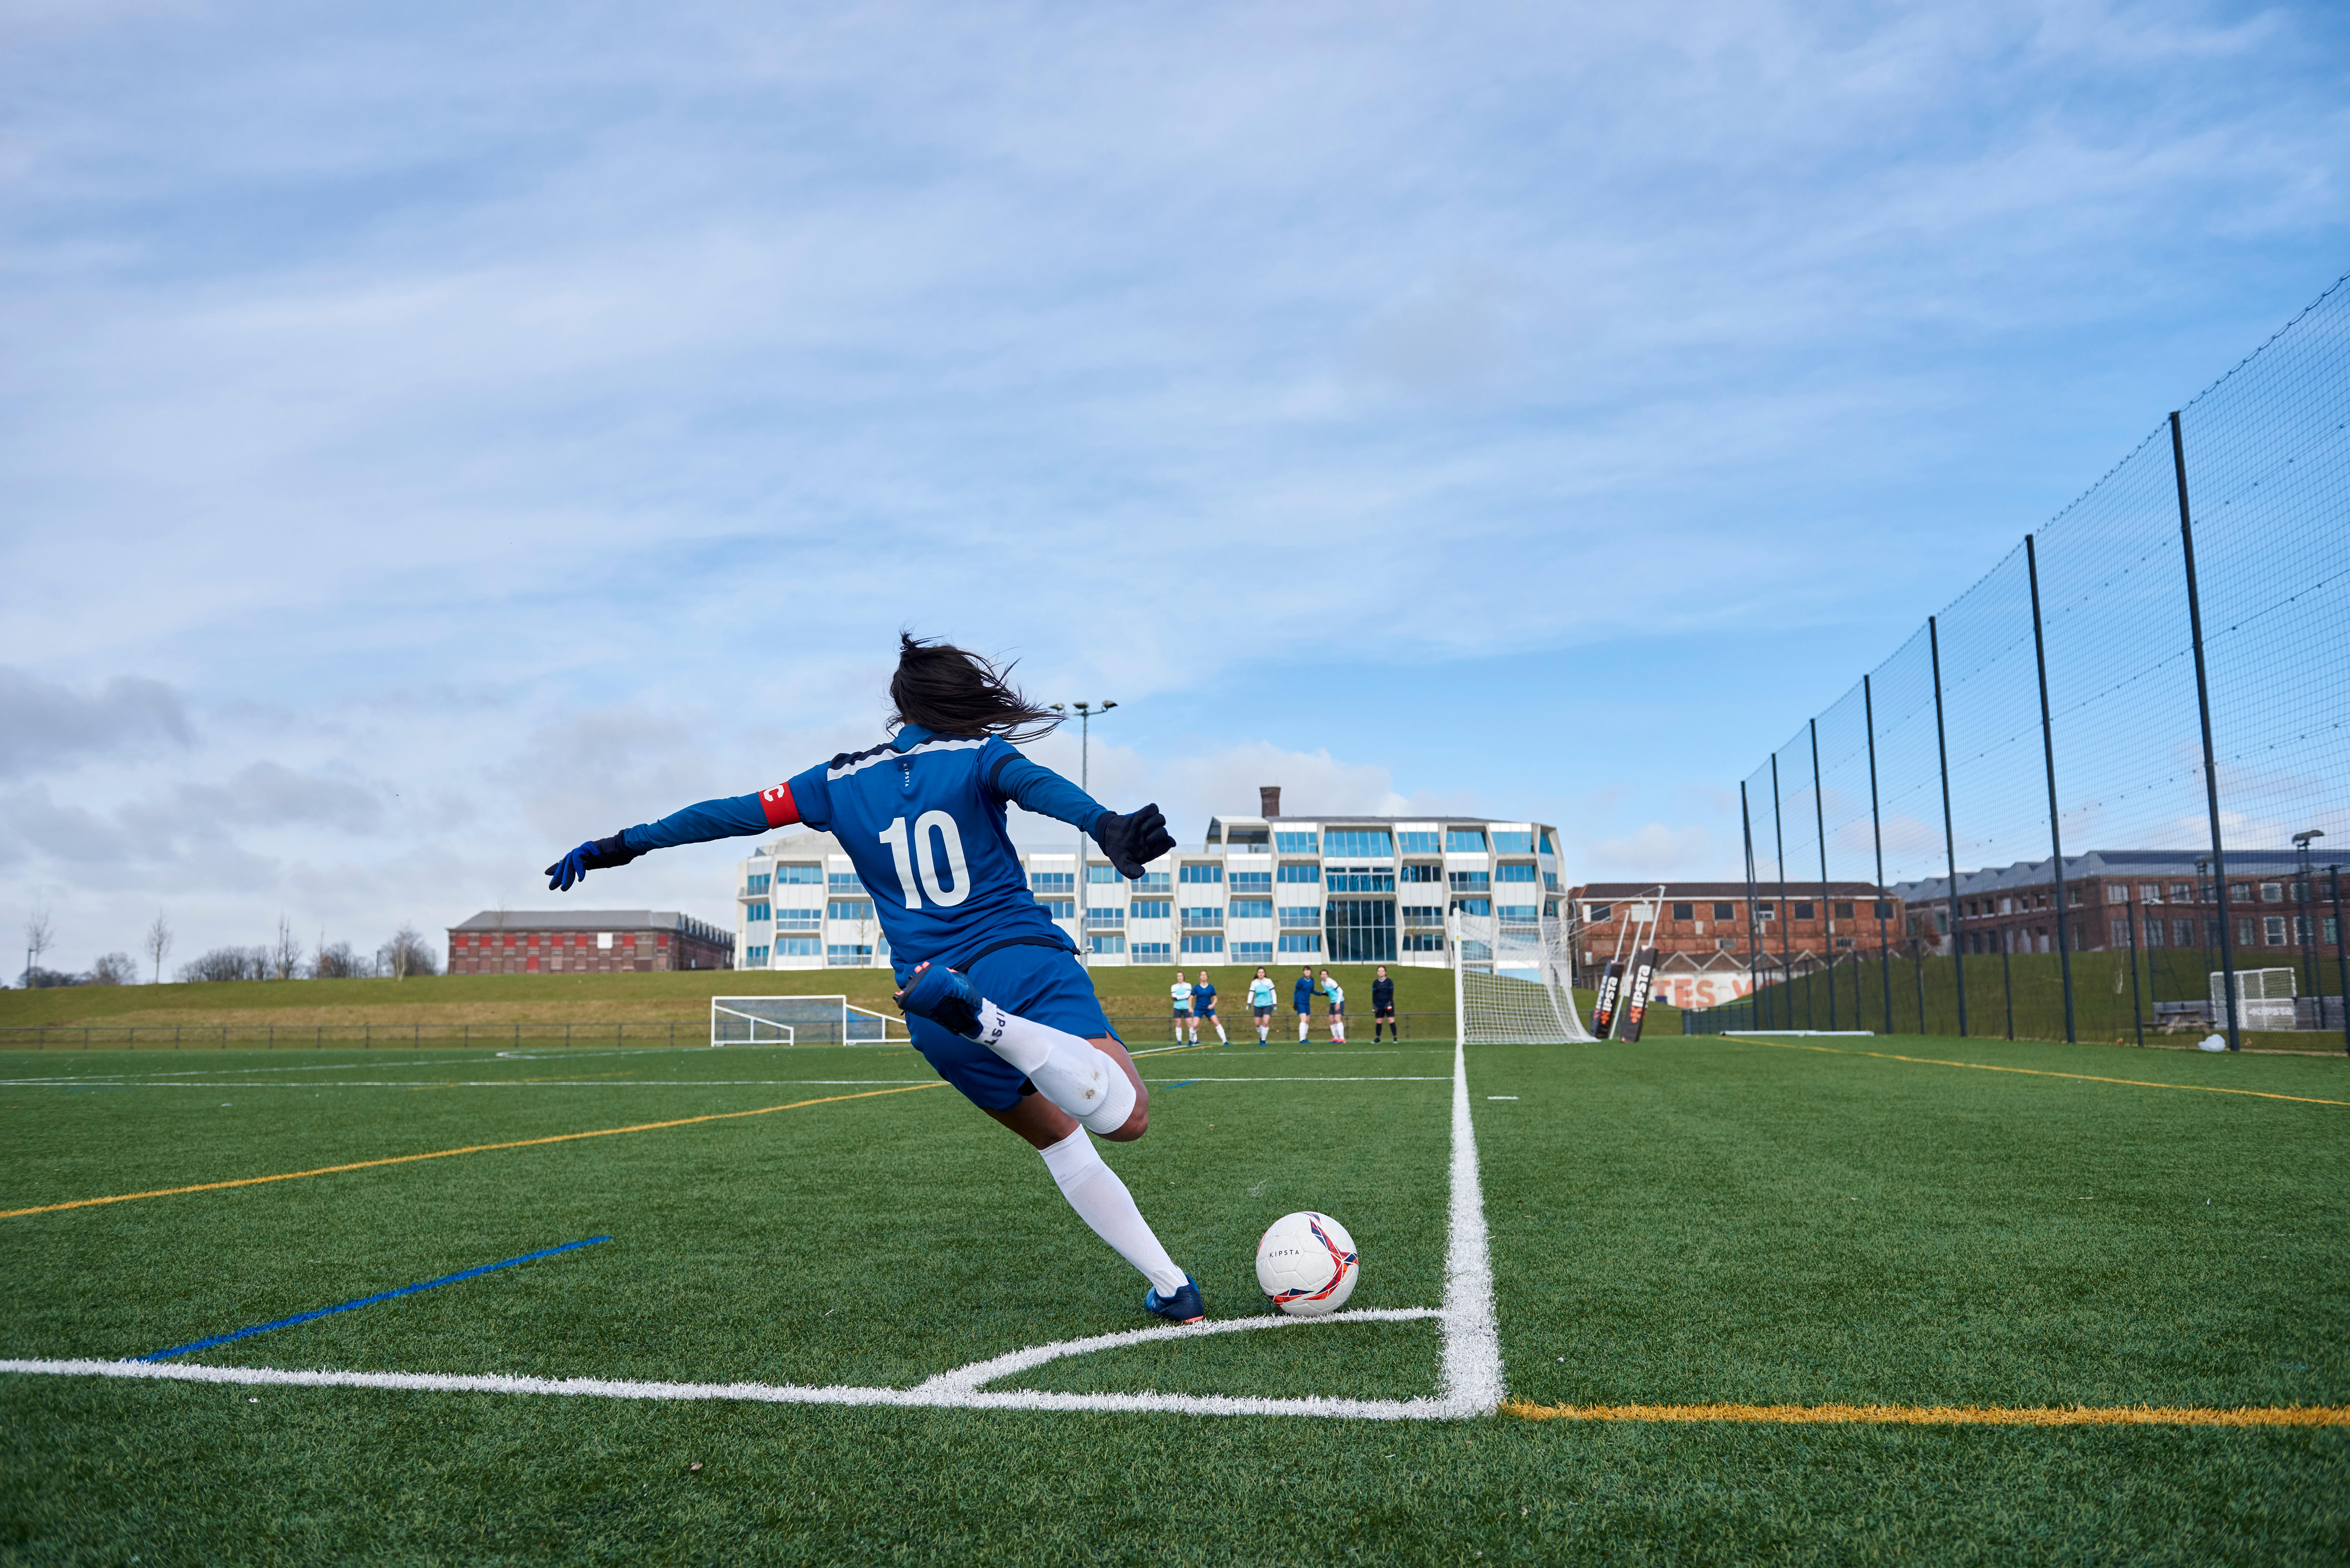 Women's Football - Niveda Manjunath on playing from the age of 8